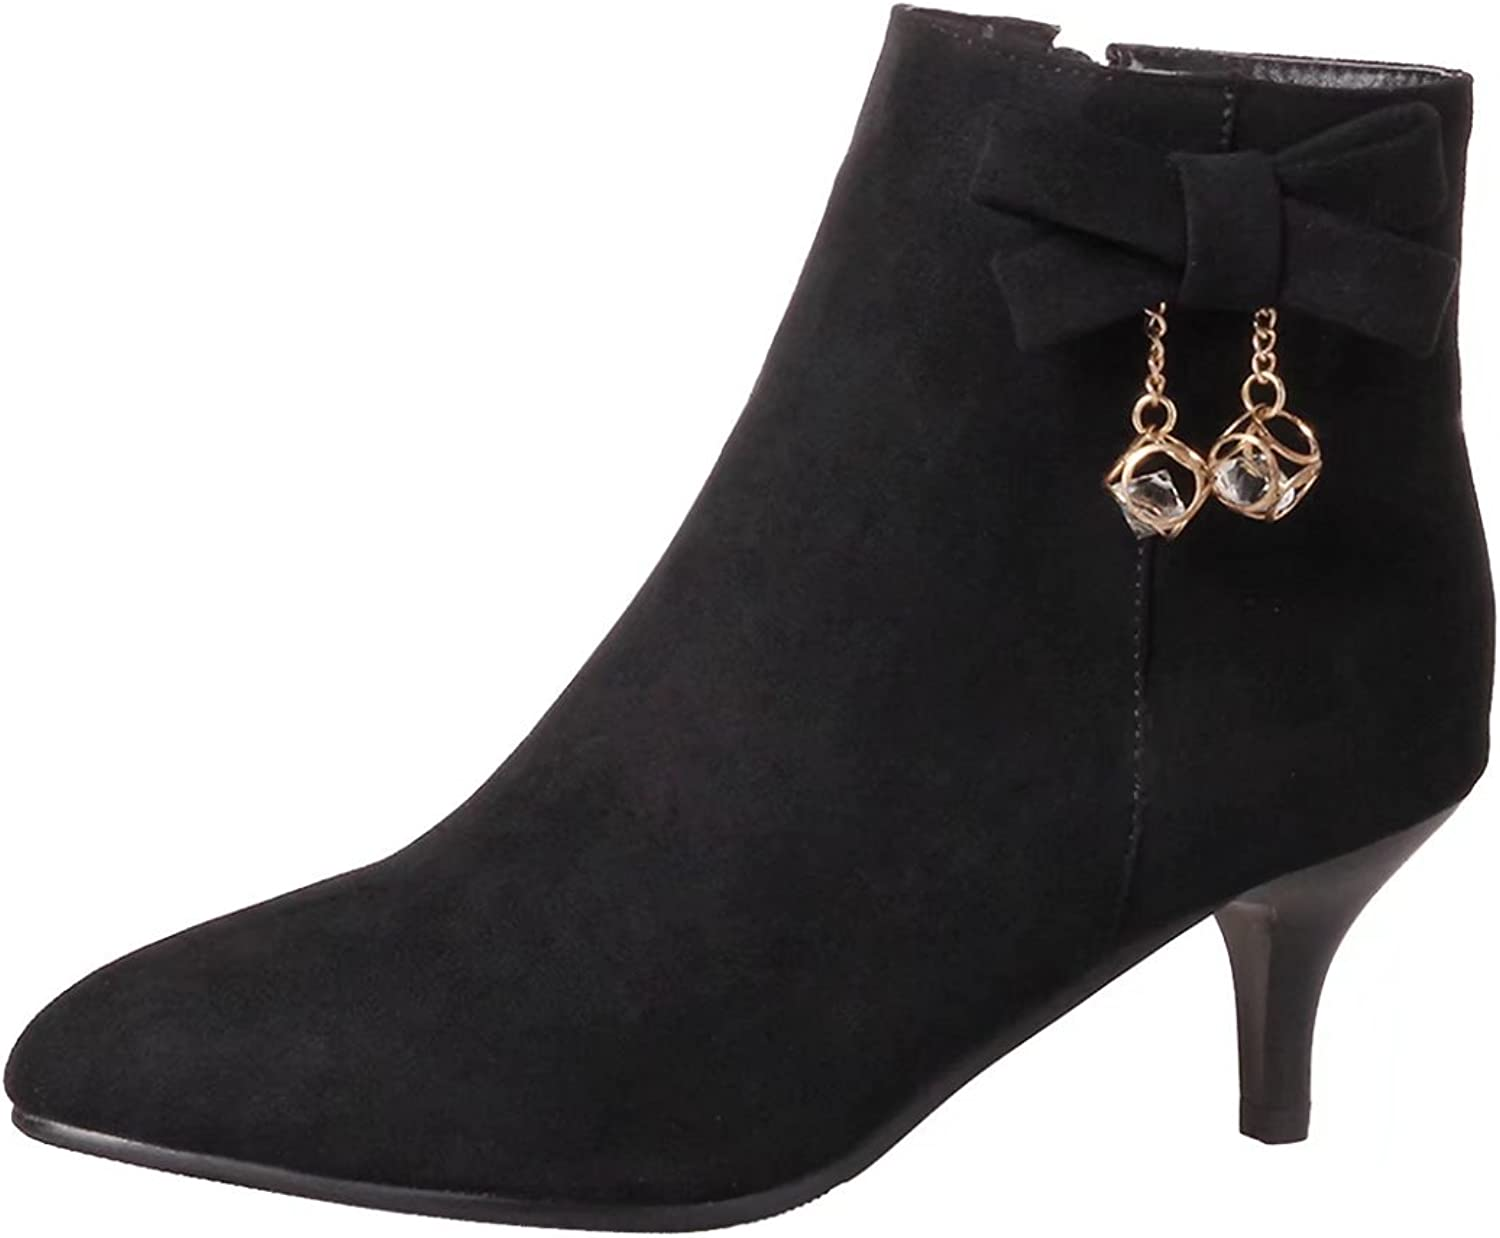 AIYOUMEI Women's Pointed Toe Kitten Heel Bootie Winter Ankle Boots with Bow and Rhinestone